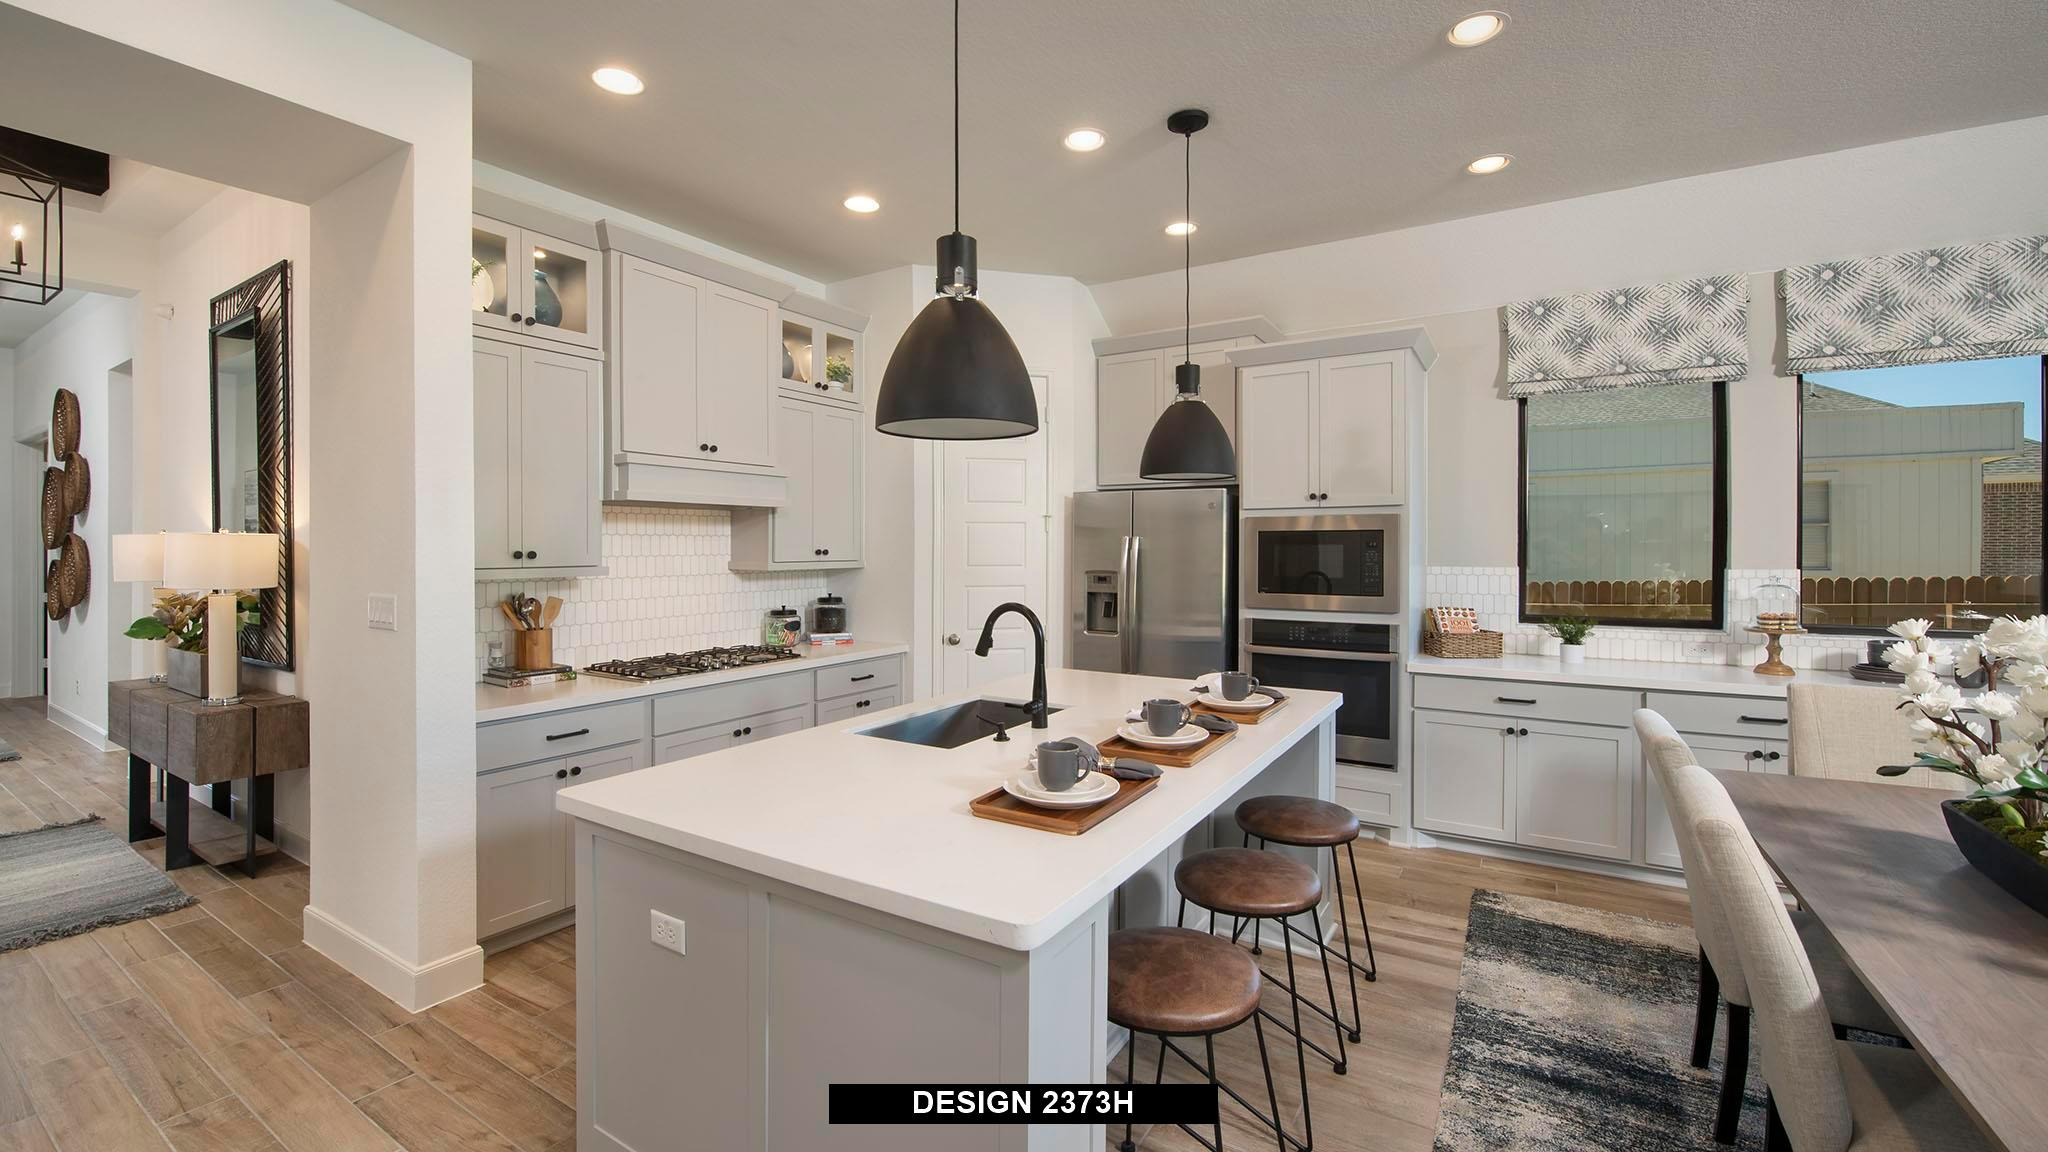 Kitchen featured in the 2373H By Perry Homes in Dallas, TX